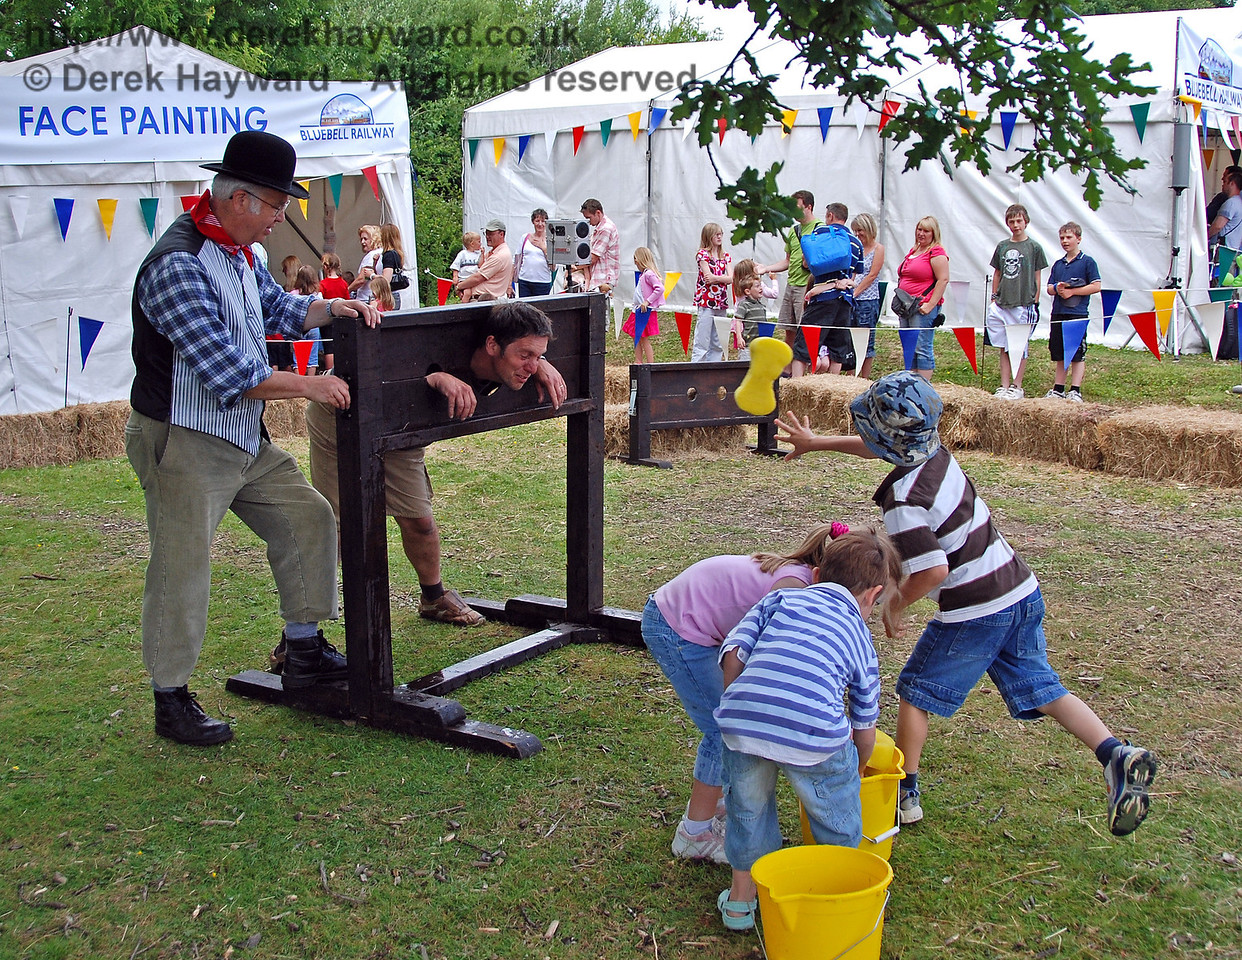 Another willing customer receives a very large wet sponge. Family Fun Weekend Horsted Keynes 29.06.2008